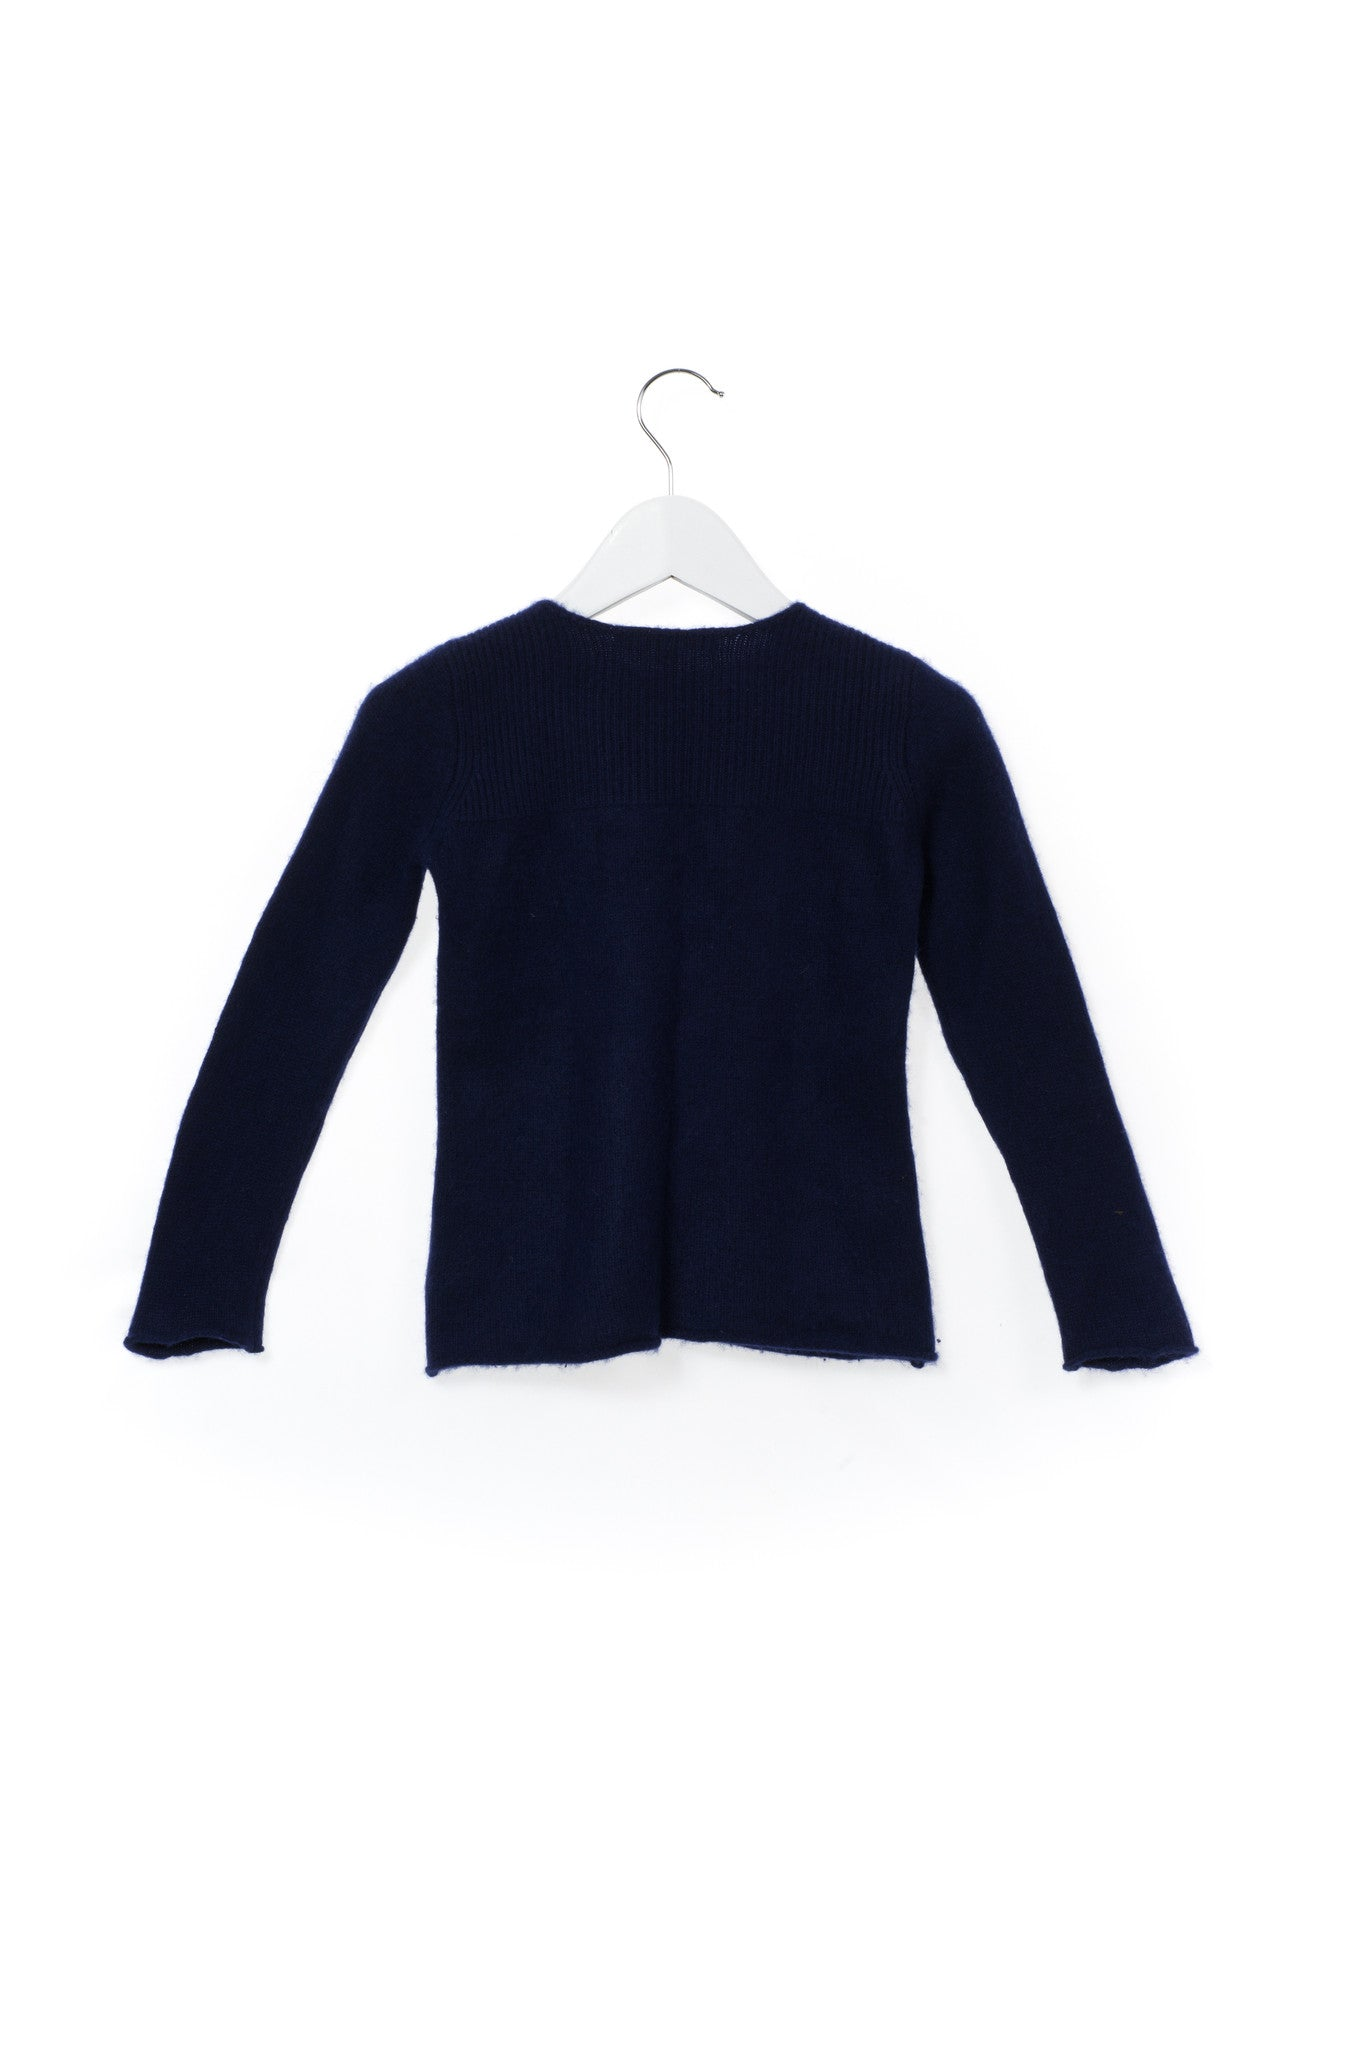 10001145 Bonpoint Kids~Sweater 4T at Retykle